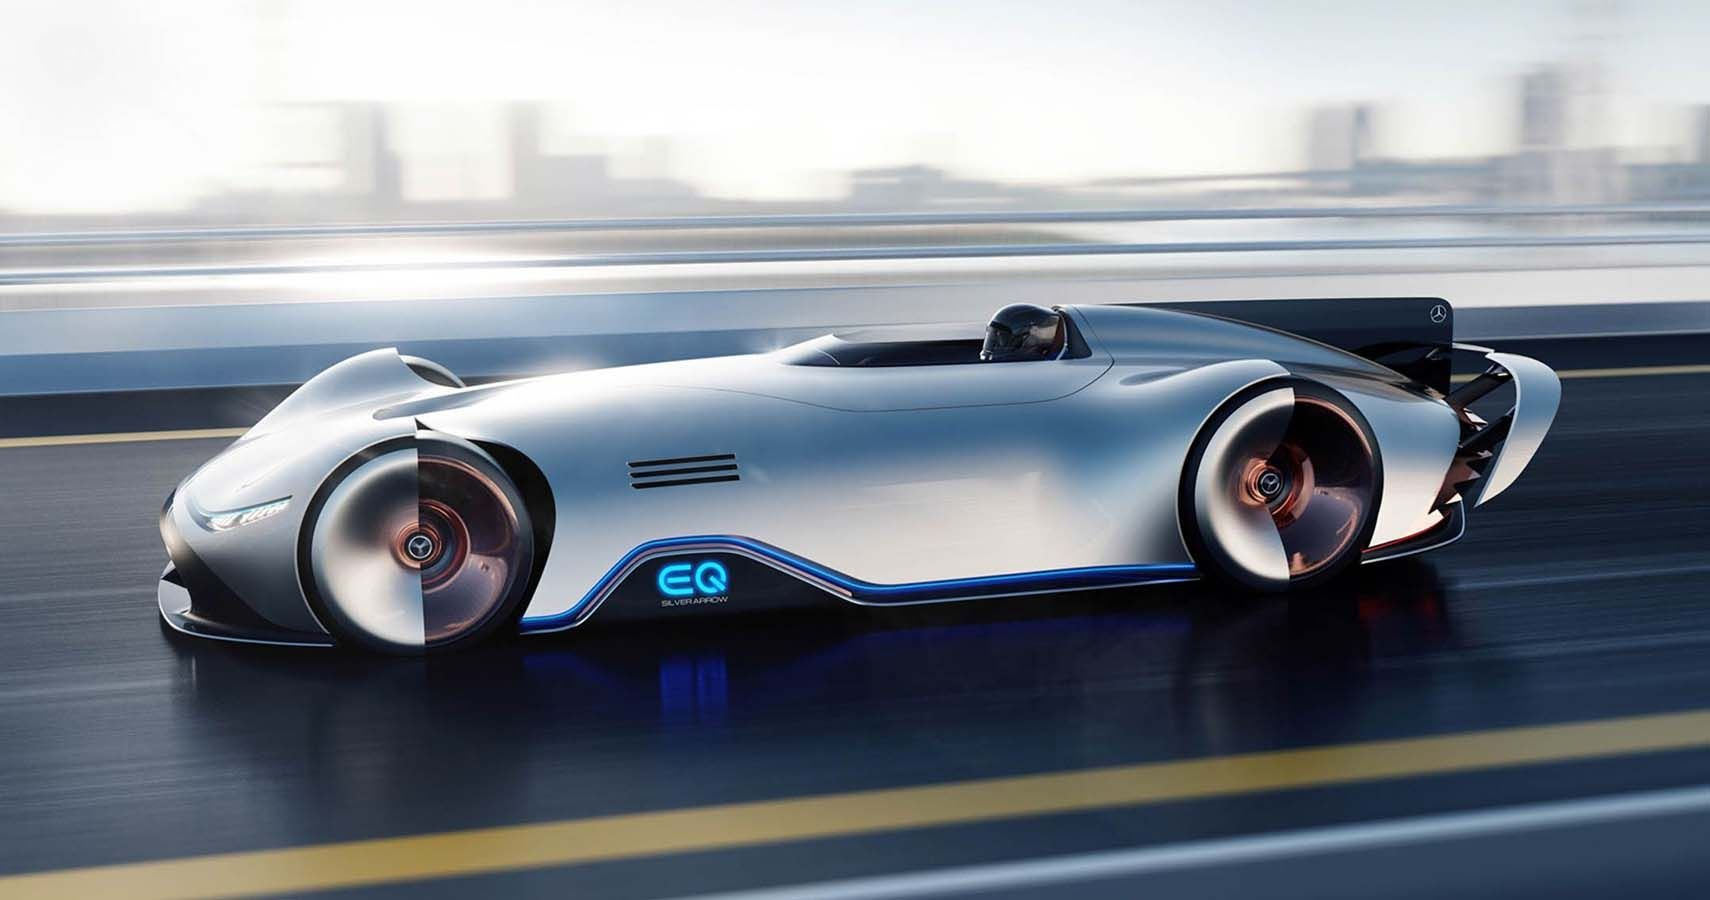 Mercedes EQ: A Full Preview Of Their Electric Lineup